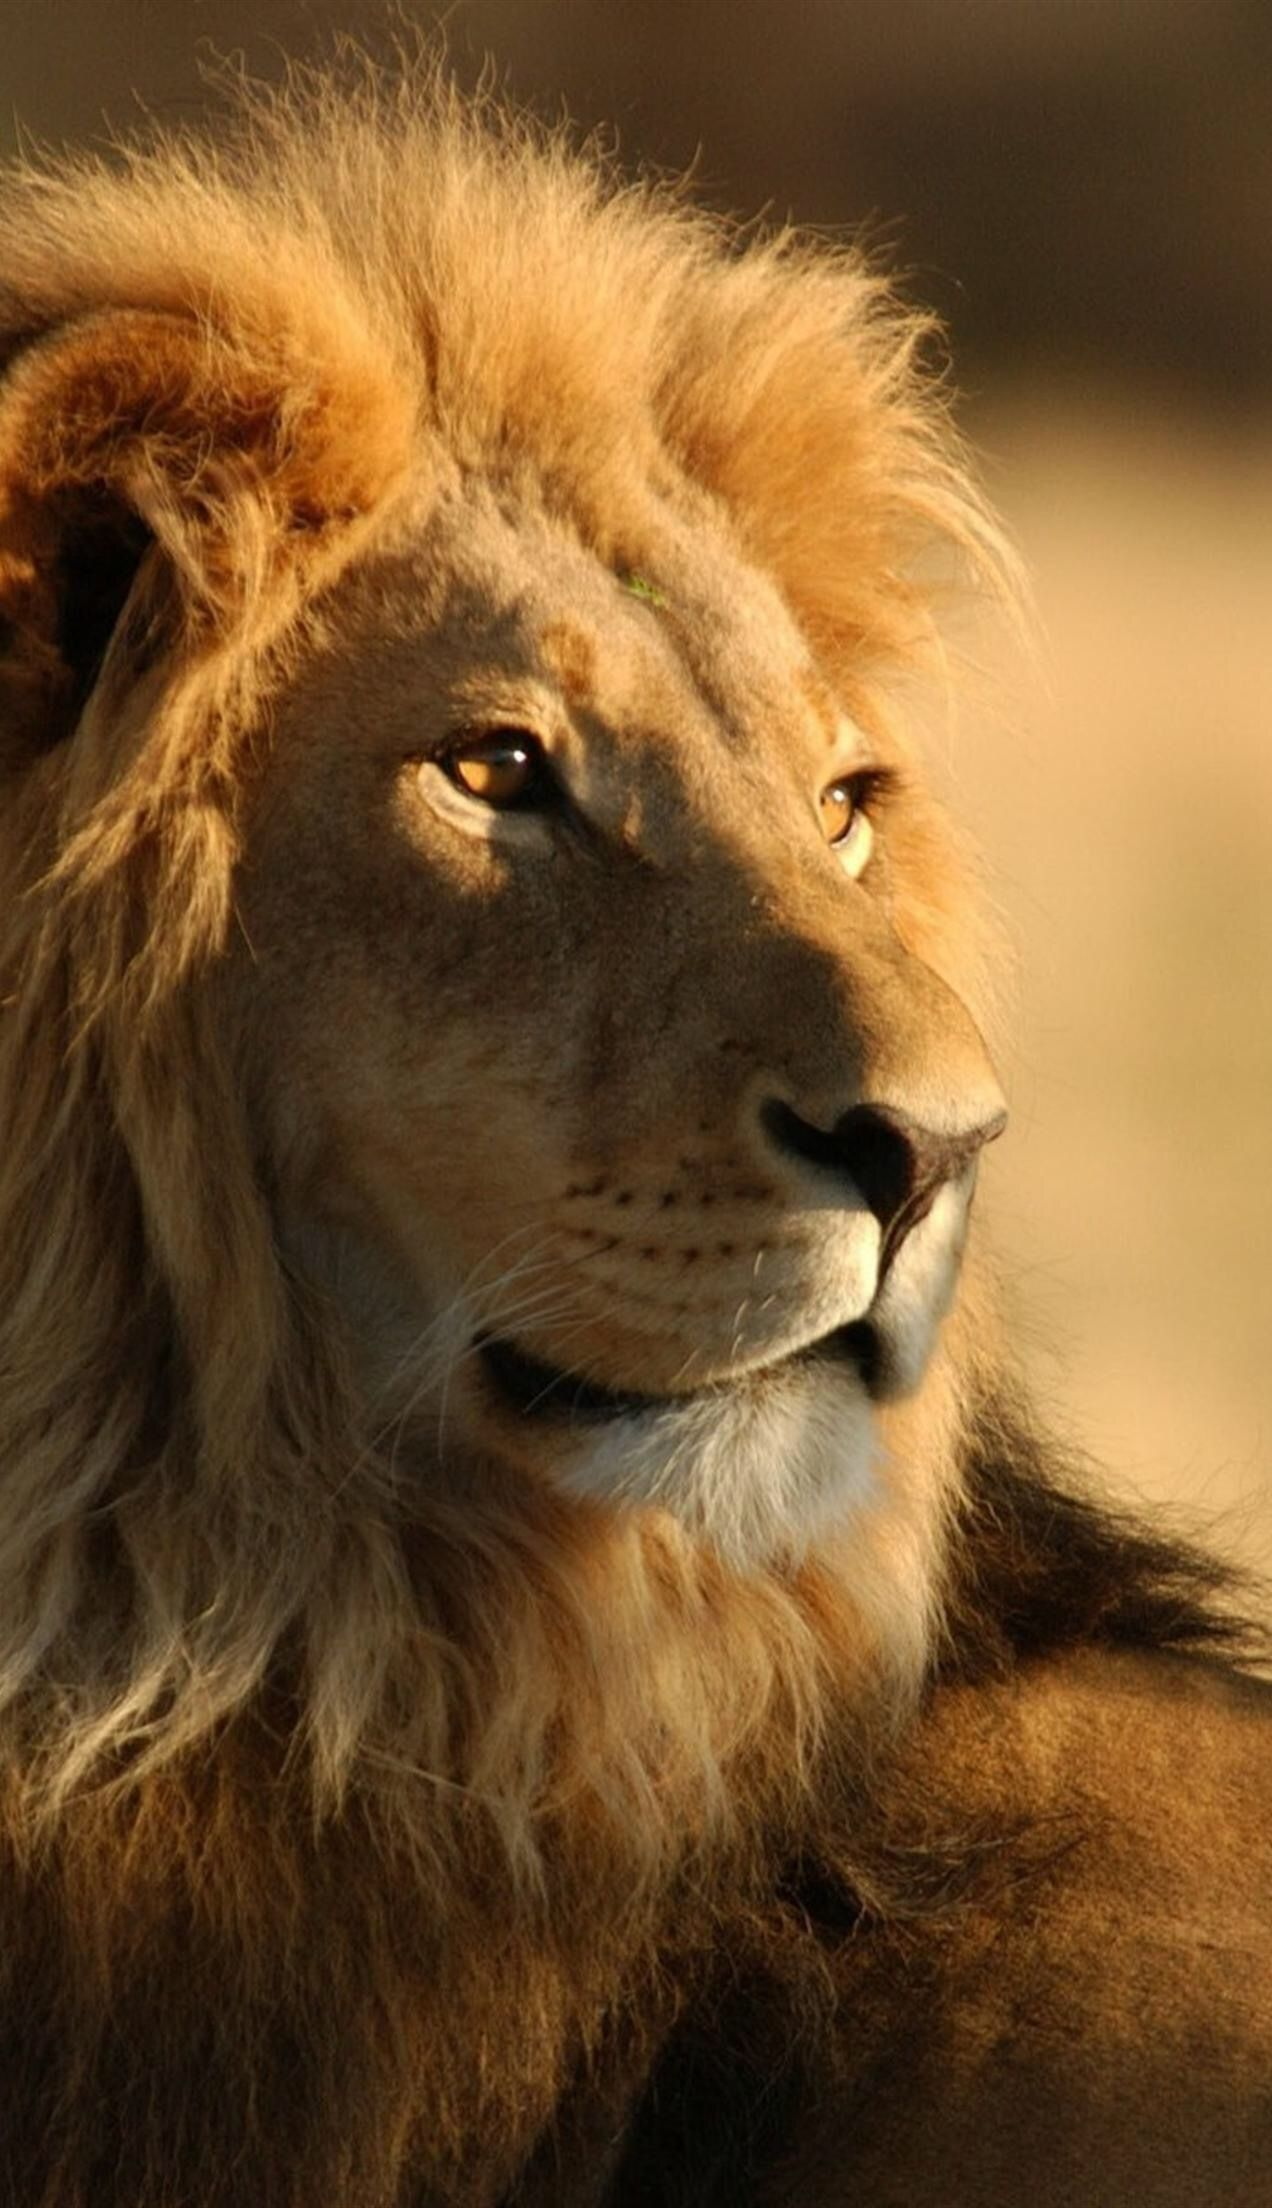 Best Wallpaper Horse Lion - 940ca18a07aa4b47eb72ed109d79baea  Perfect Image Reference_21393.jpg